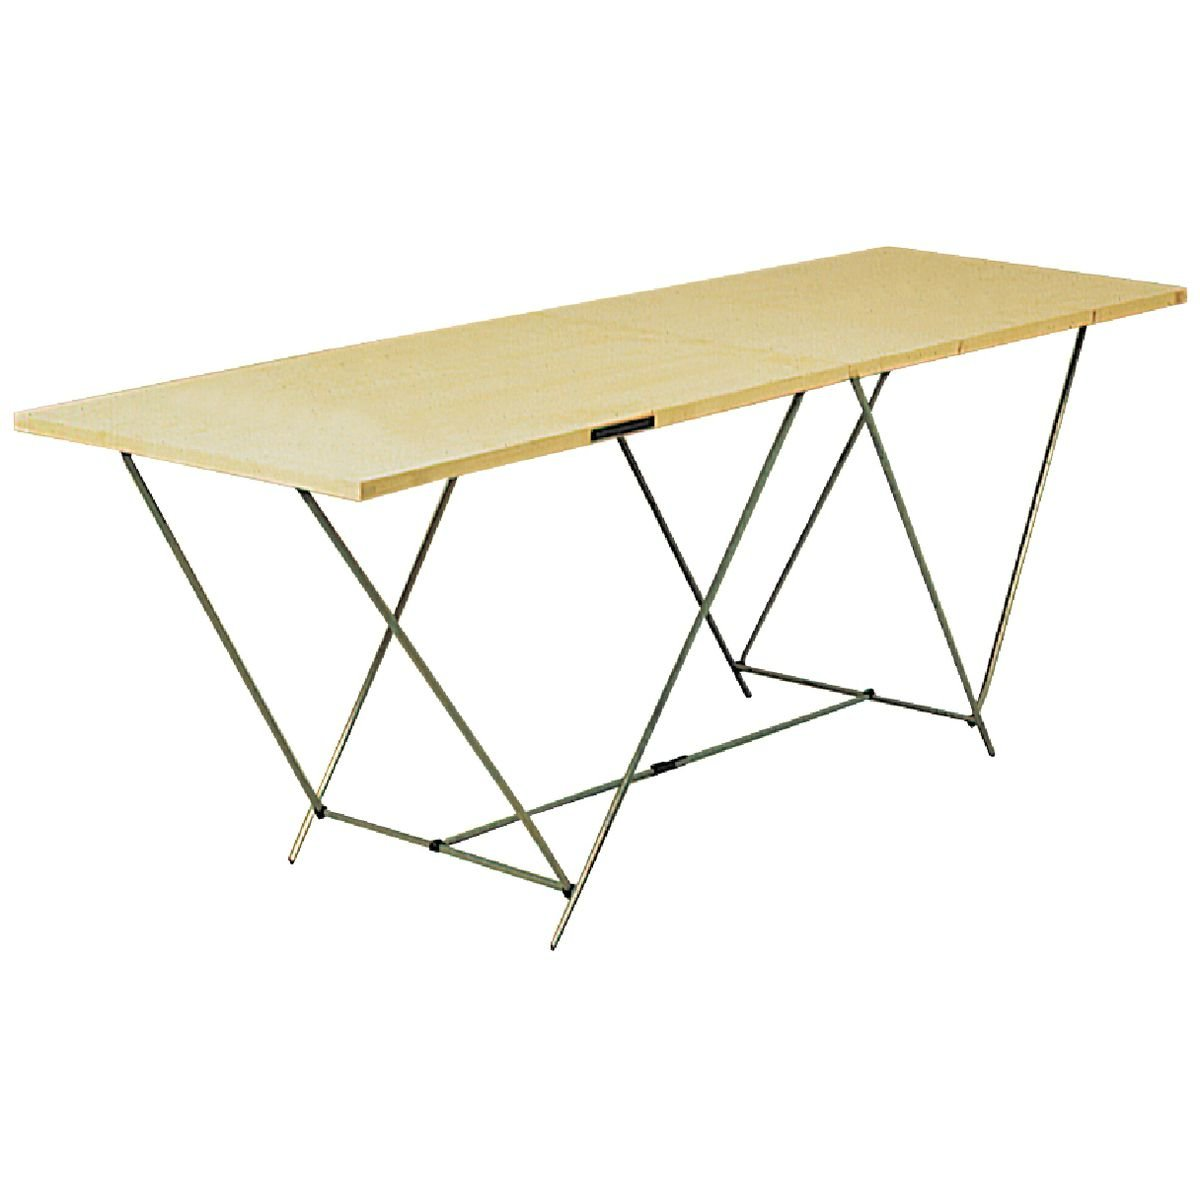 Attrayant Table A Tapisser Leroy Merlin #5: Delightful Table A Tapisser Pas Cher #1: Leroy Merlin